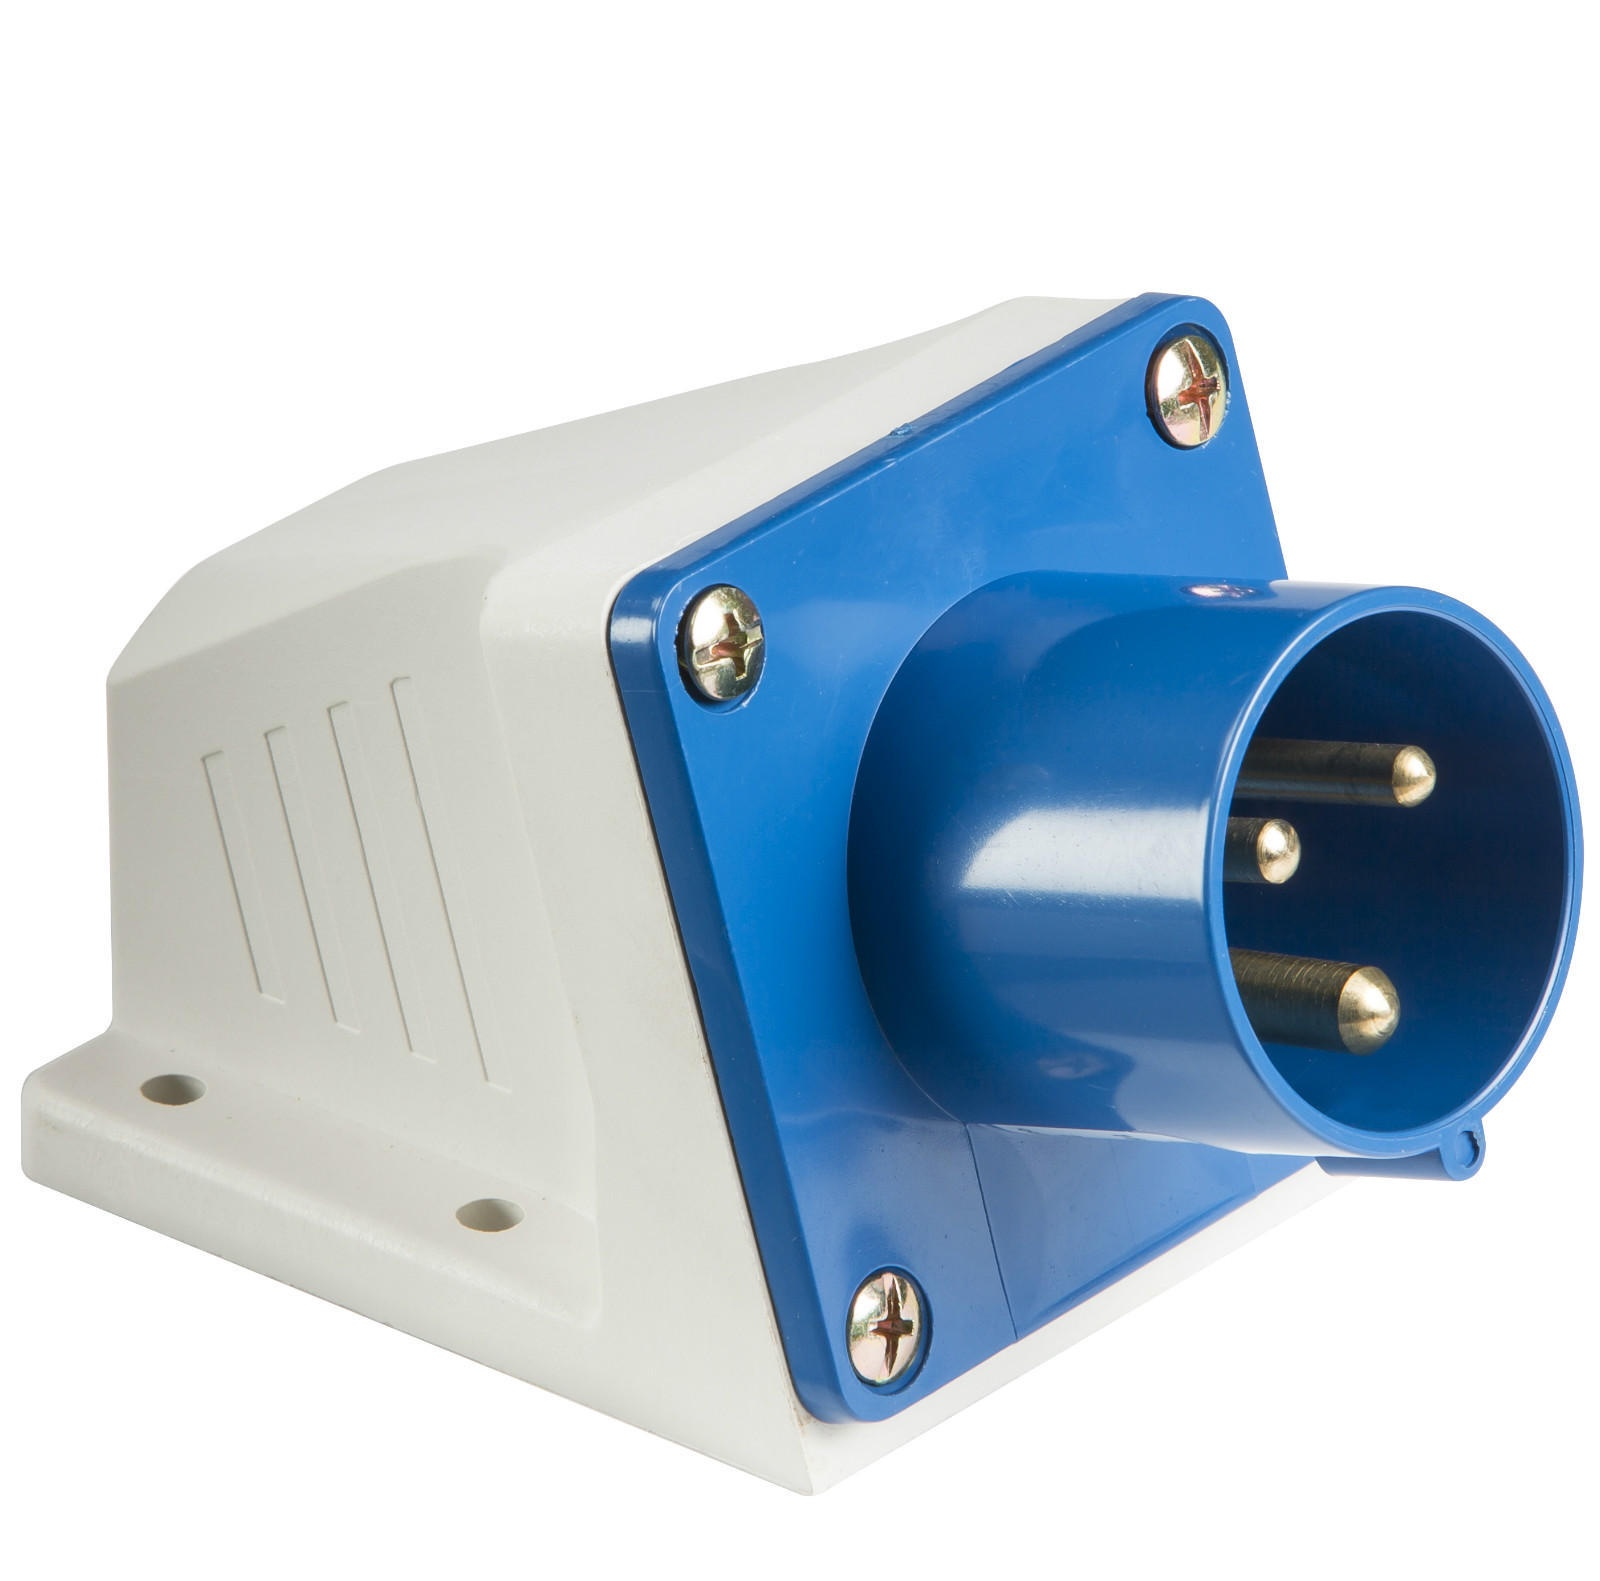 240V IP44 16A Appliance Inlet